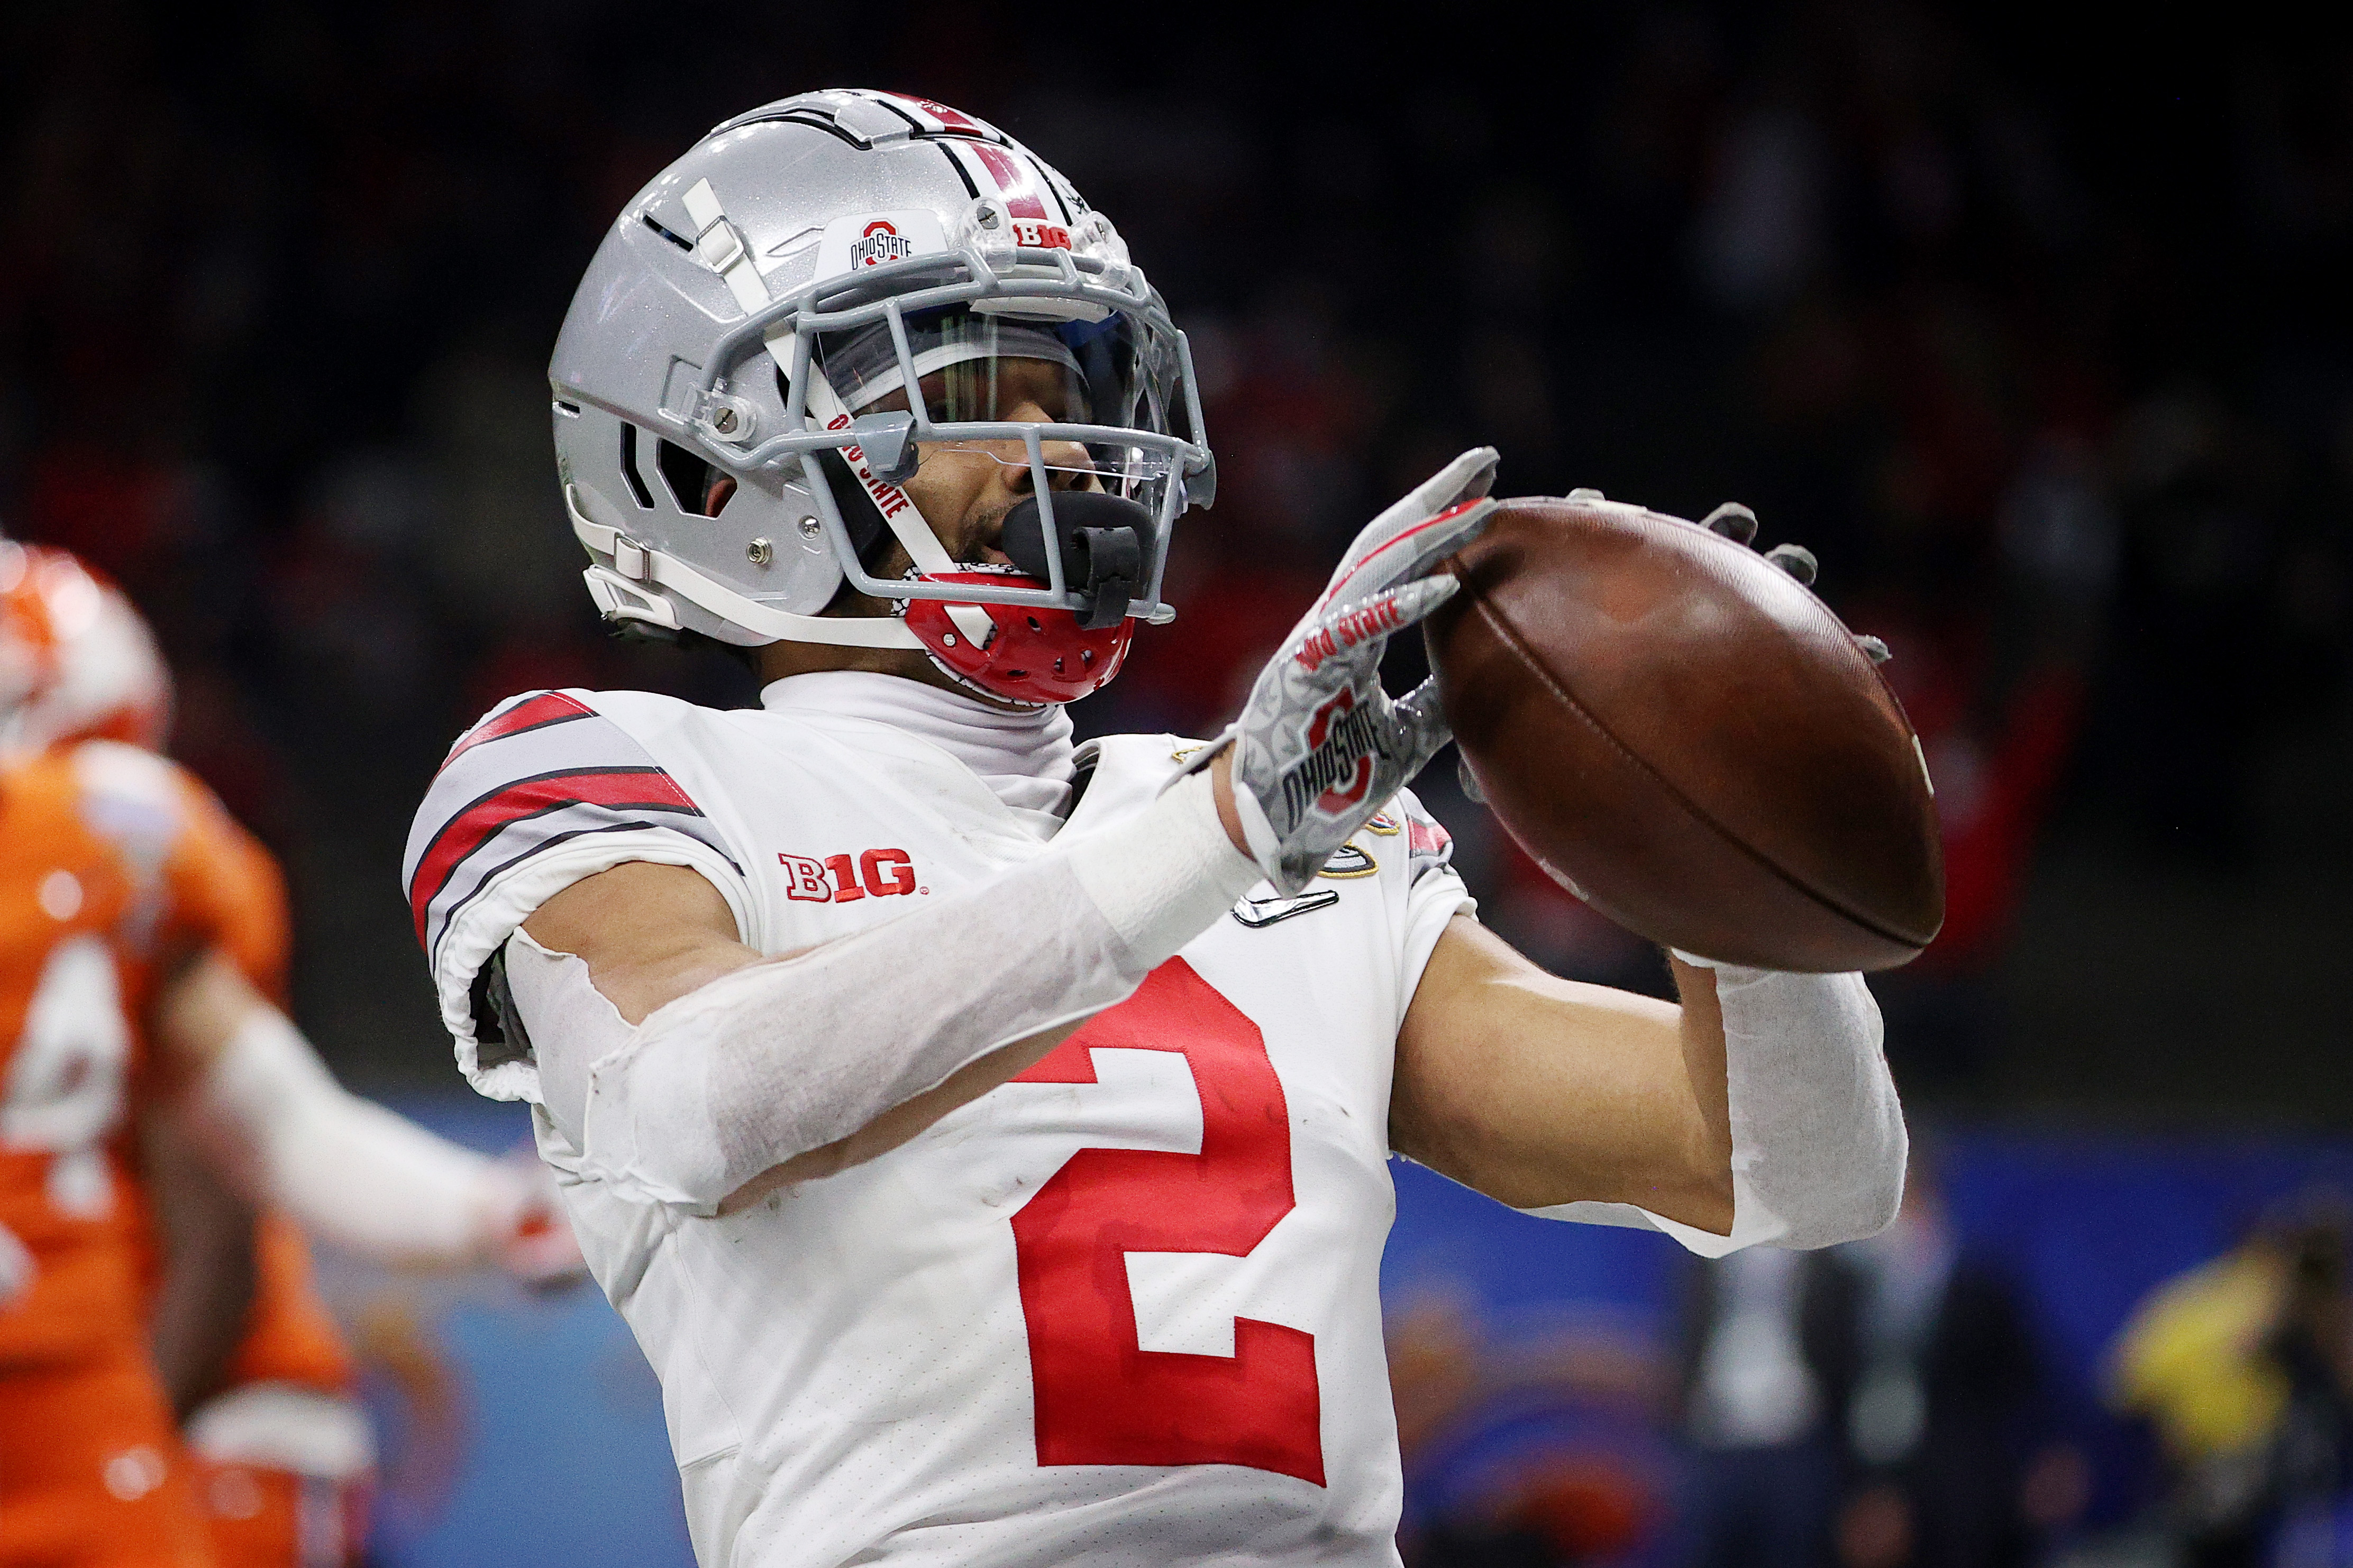 Chris Olave of the Ohio State Buckeyes reacts after his touchdown catch against the Clemson Tigers in the third quarter during the College Football Playoff semifinal game at the Allstate Sugar Bowl at Mercedes-Benz Superdome on January 01, 2021 in New Orleans, Louisiana.